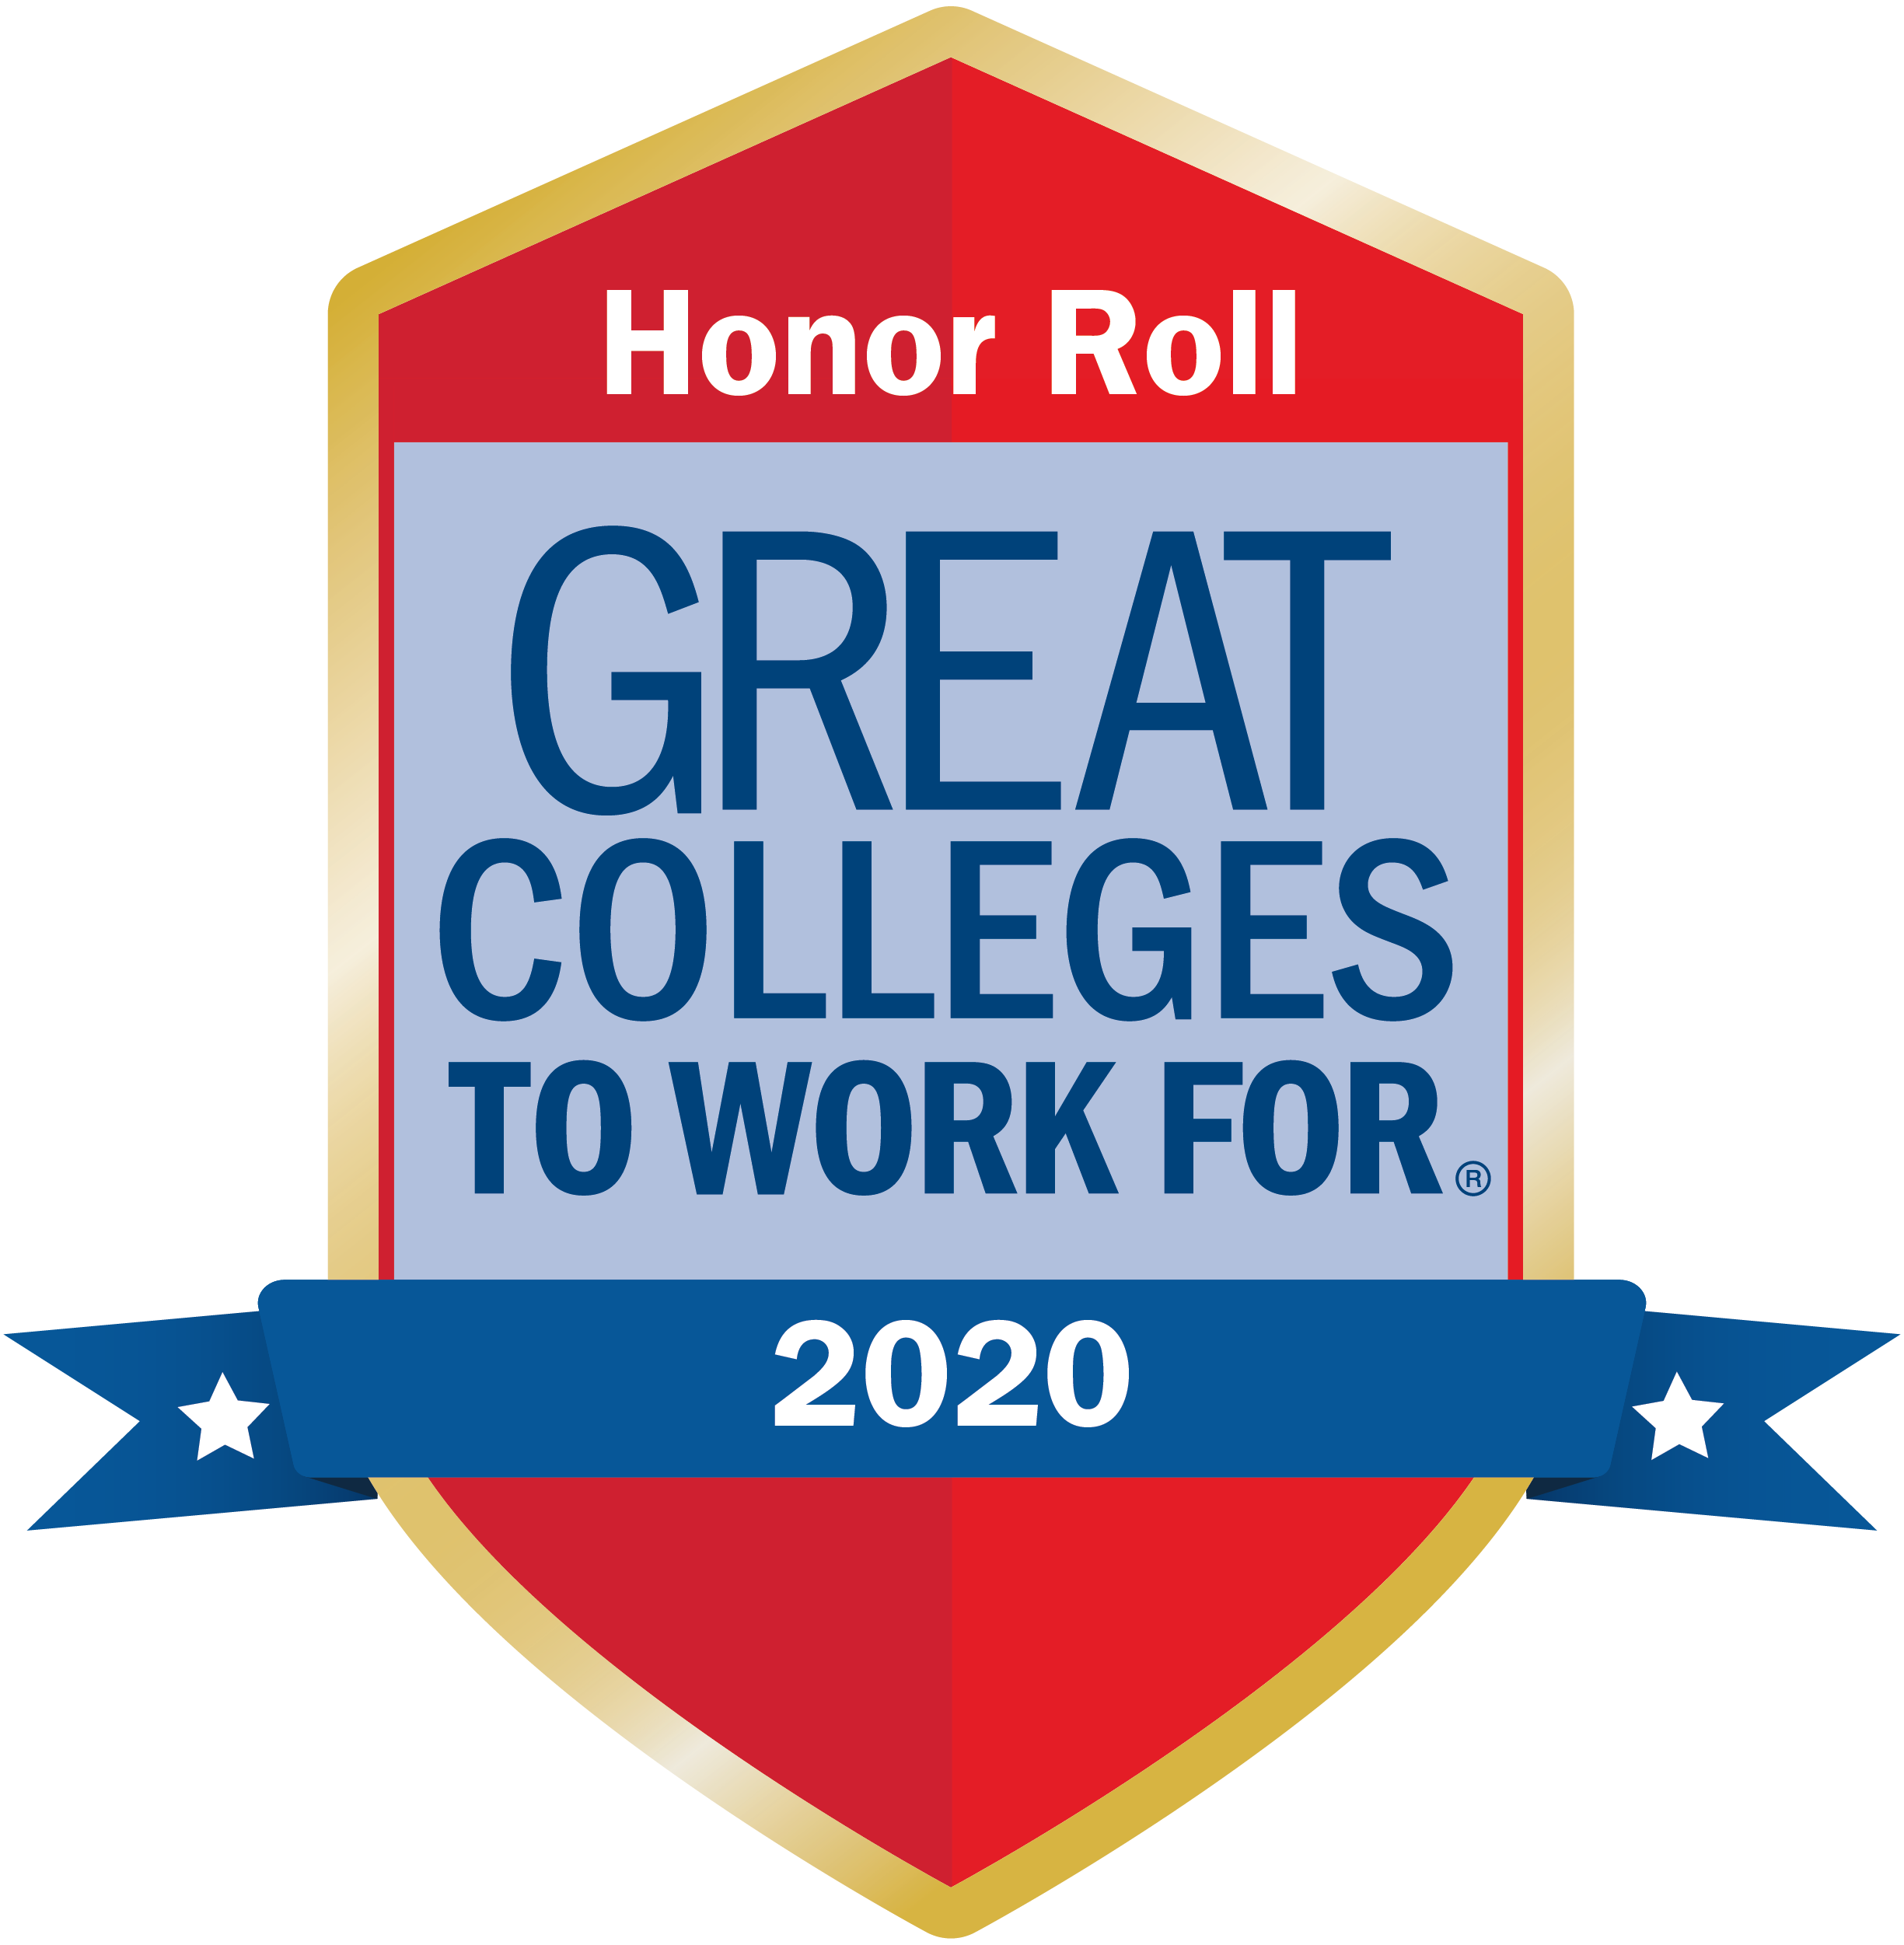 Great College to Work For Honor Roll Logo